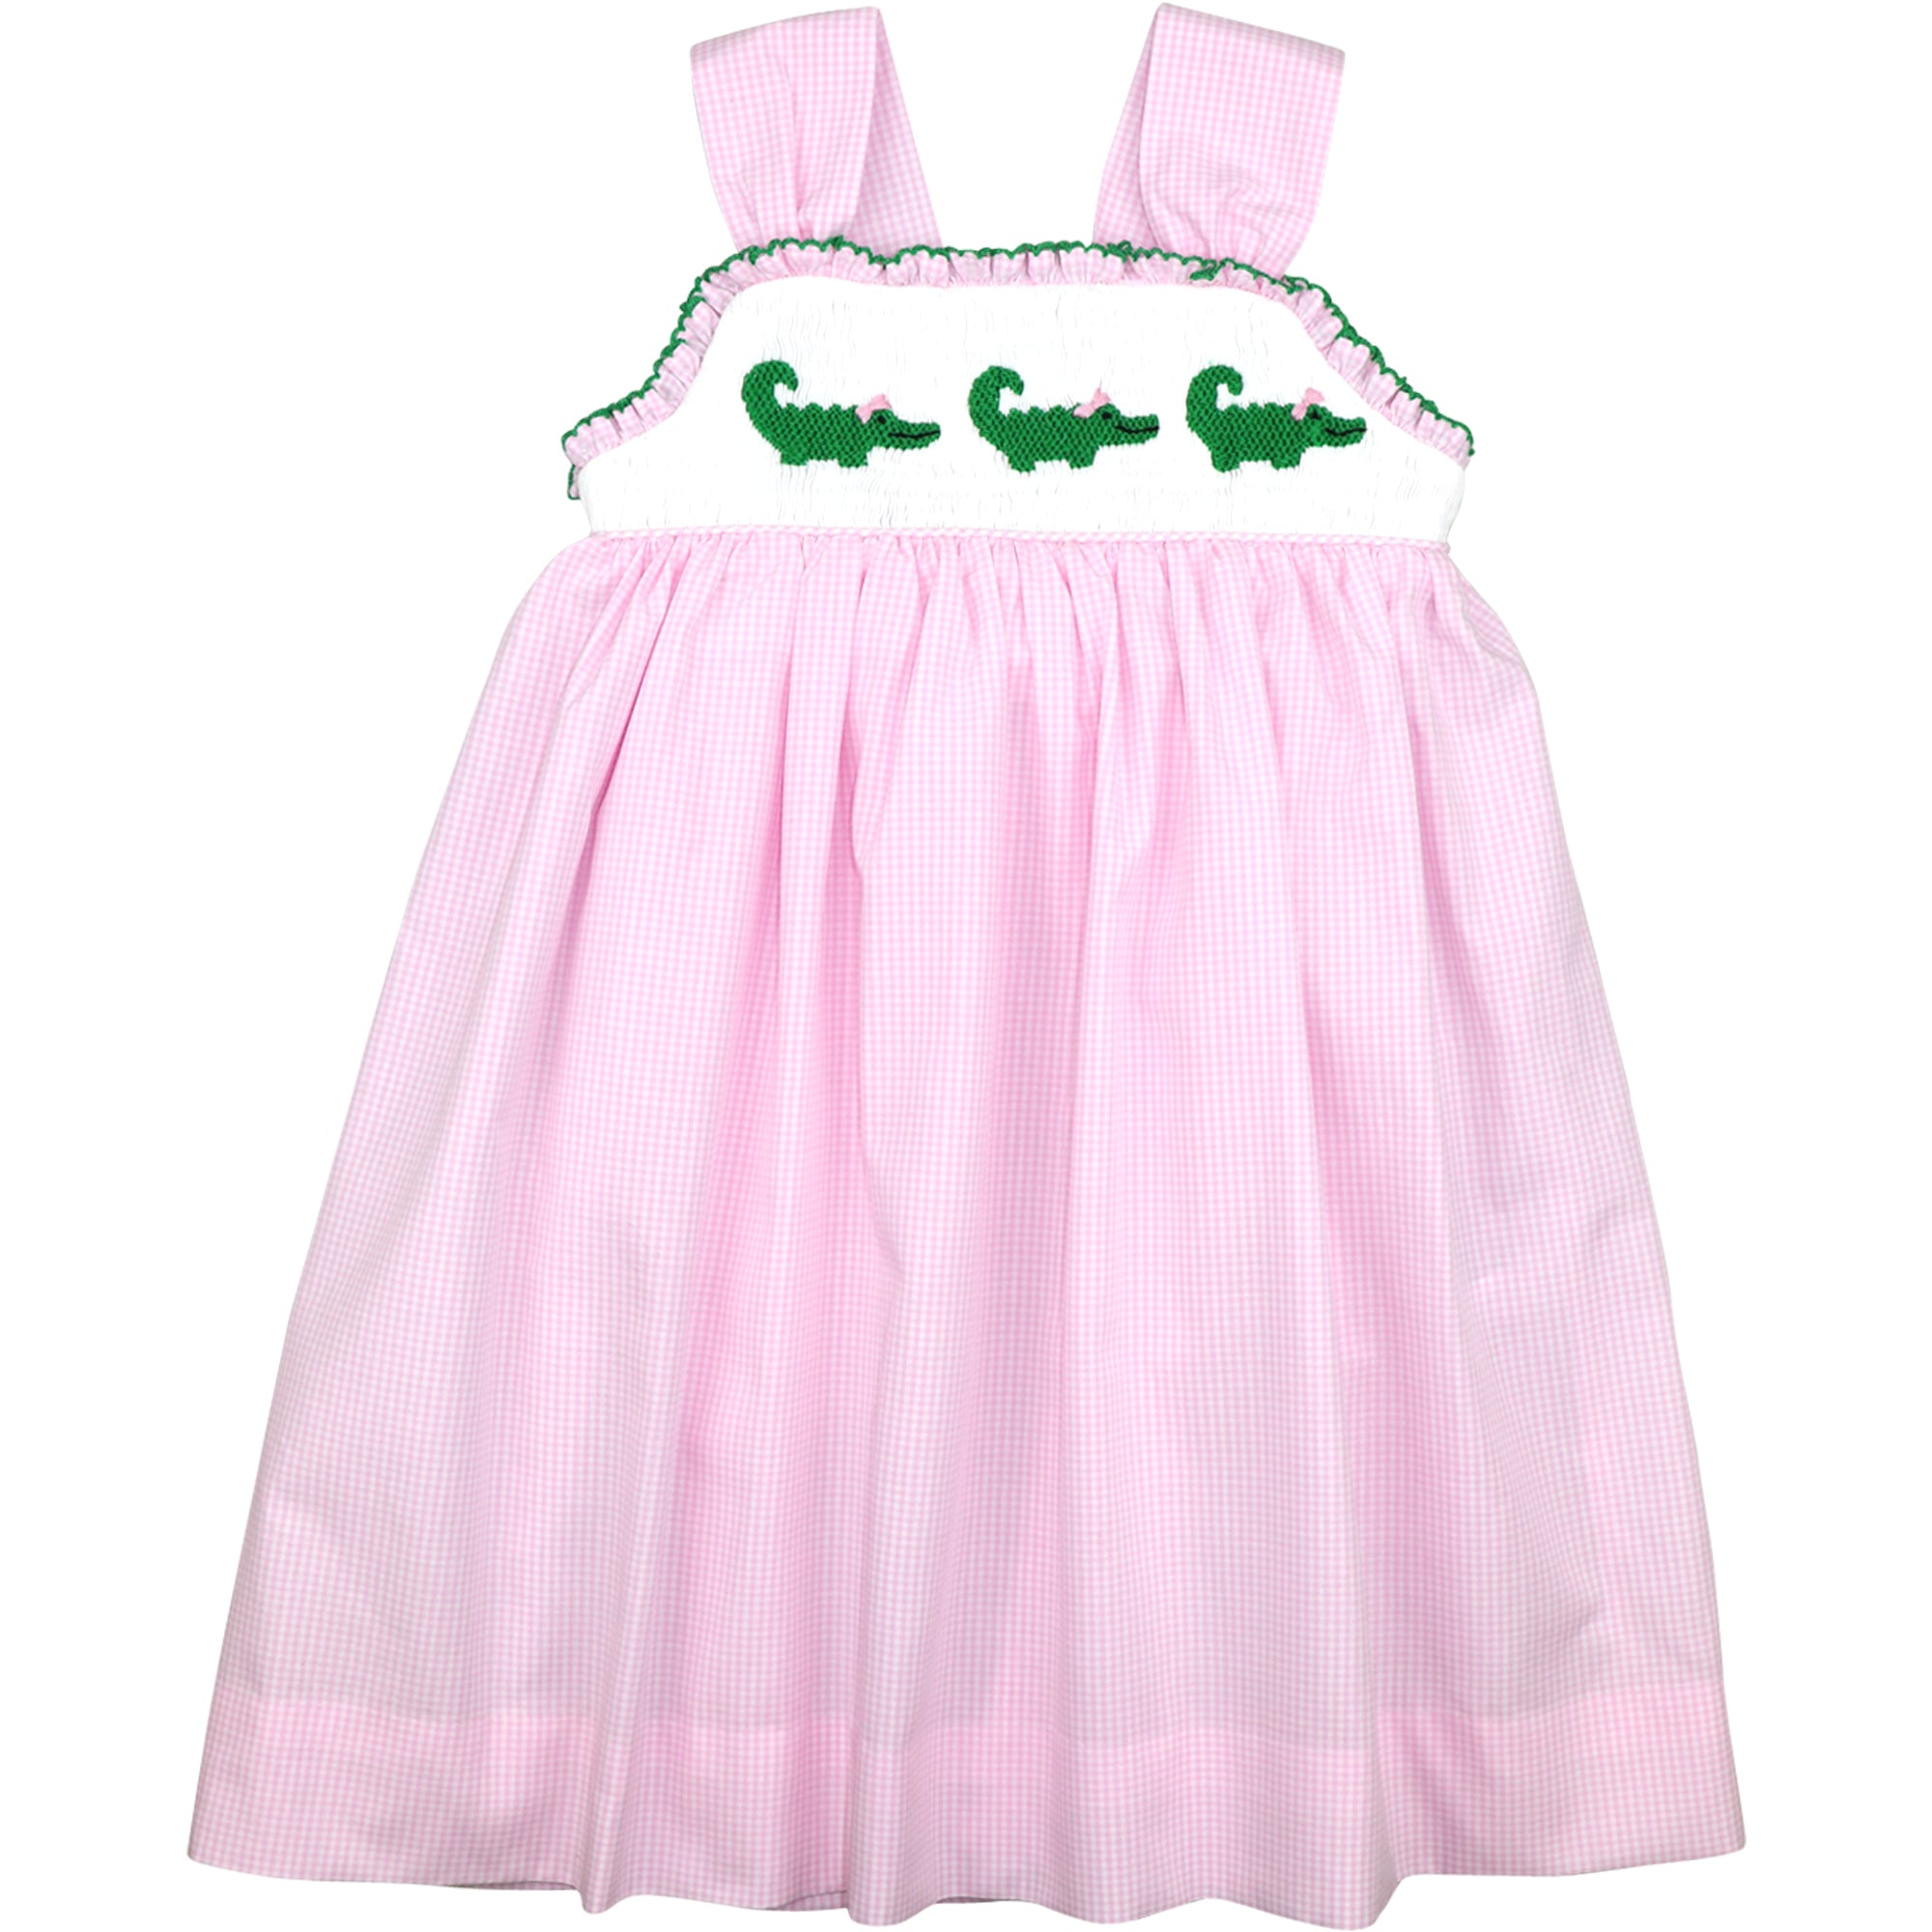 Pink Gingham Check Smocked Alligators Bow Dress